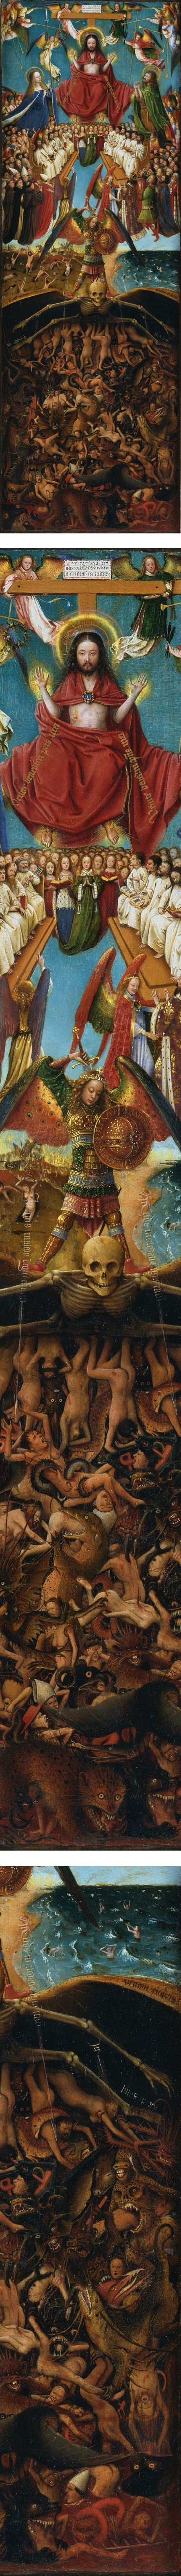 Jan van Eyck's The Last Judgement